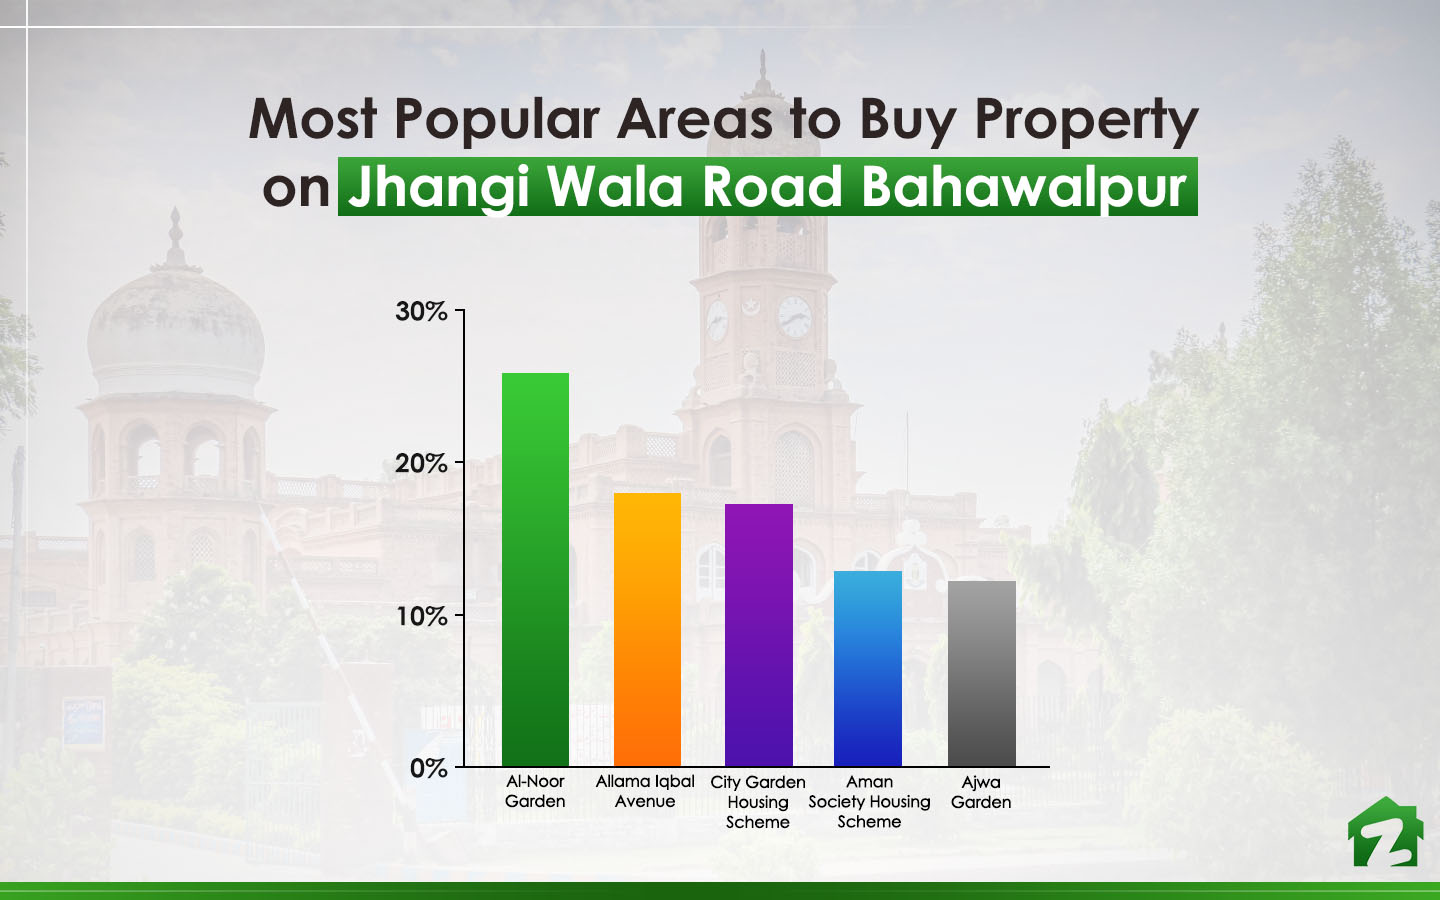 People searched for Al-Noor Garden the most when looking for properties to buy